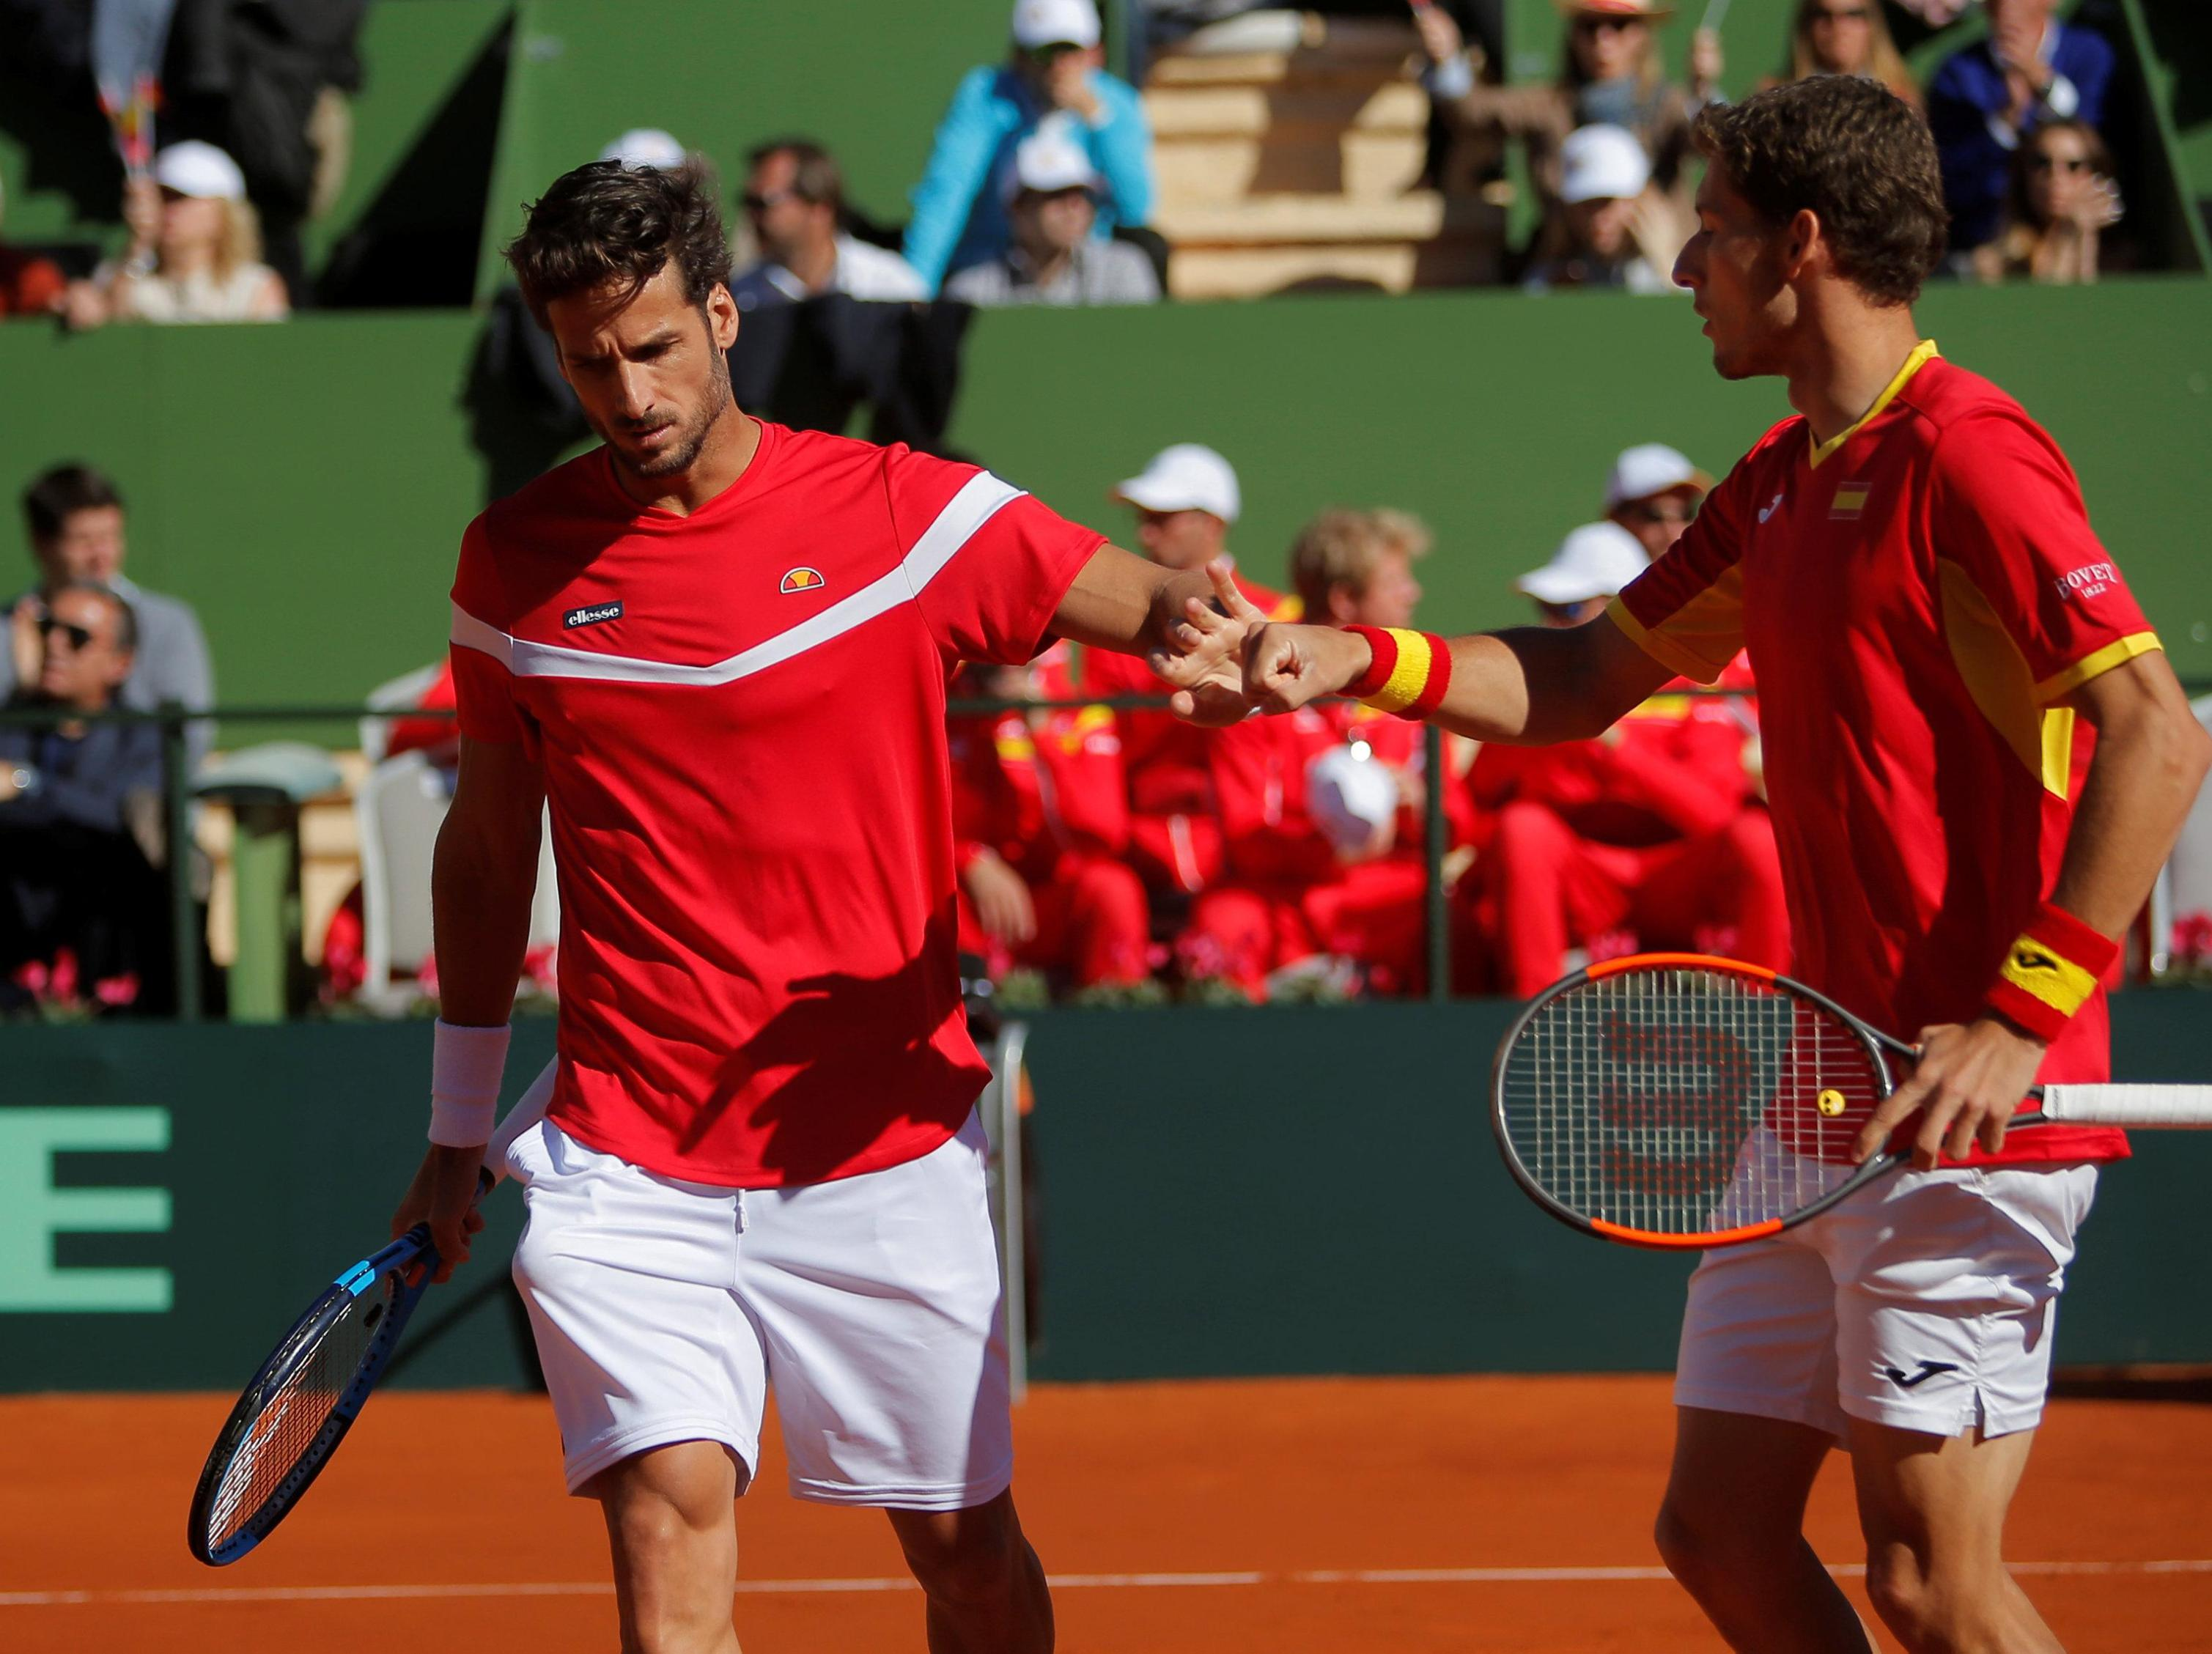 Pablo Carreno Busta and Feliciano Lopez celebrate during their doubles match against Great Britain's Dominic Inglot and Jamie Murray.